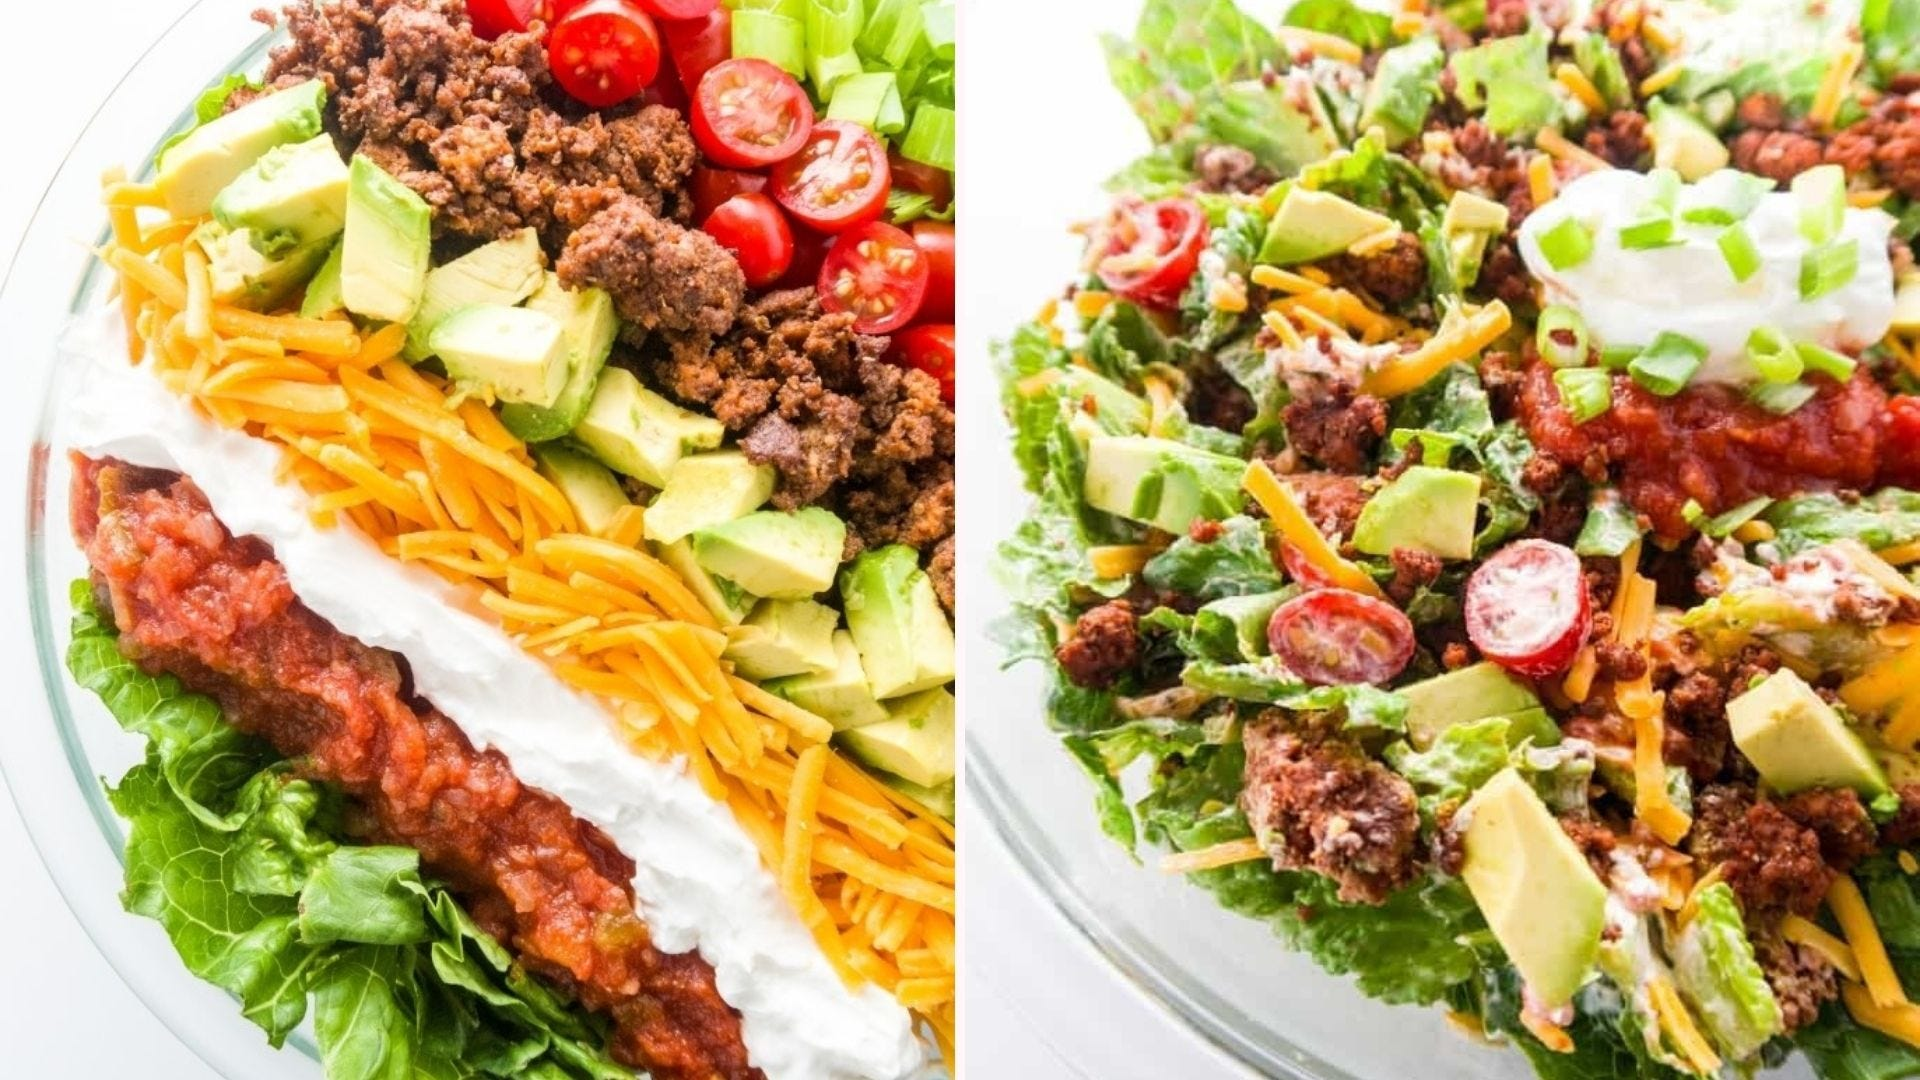 Two images of taco salad, plated in two different ways to highlight the tasty taco-inspired ingredients.